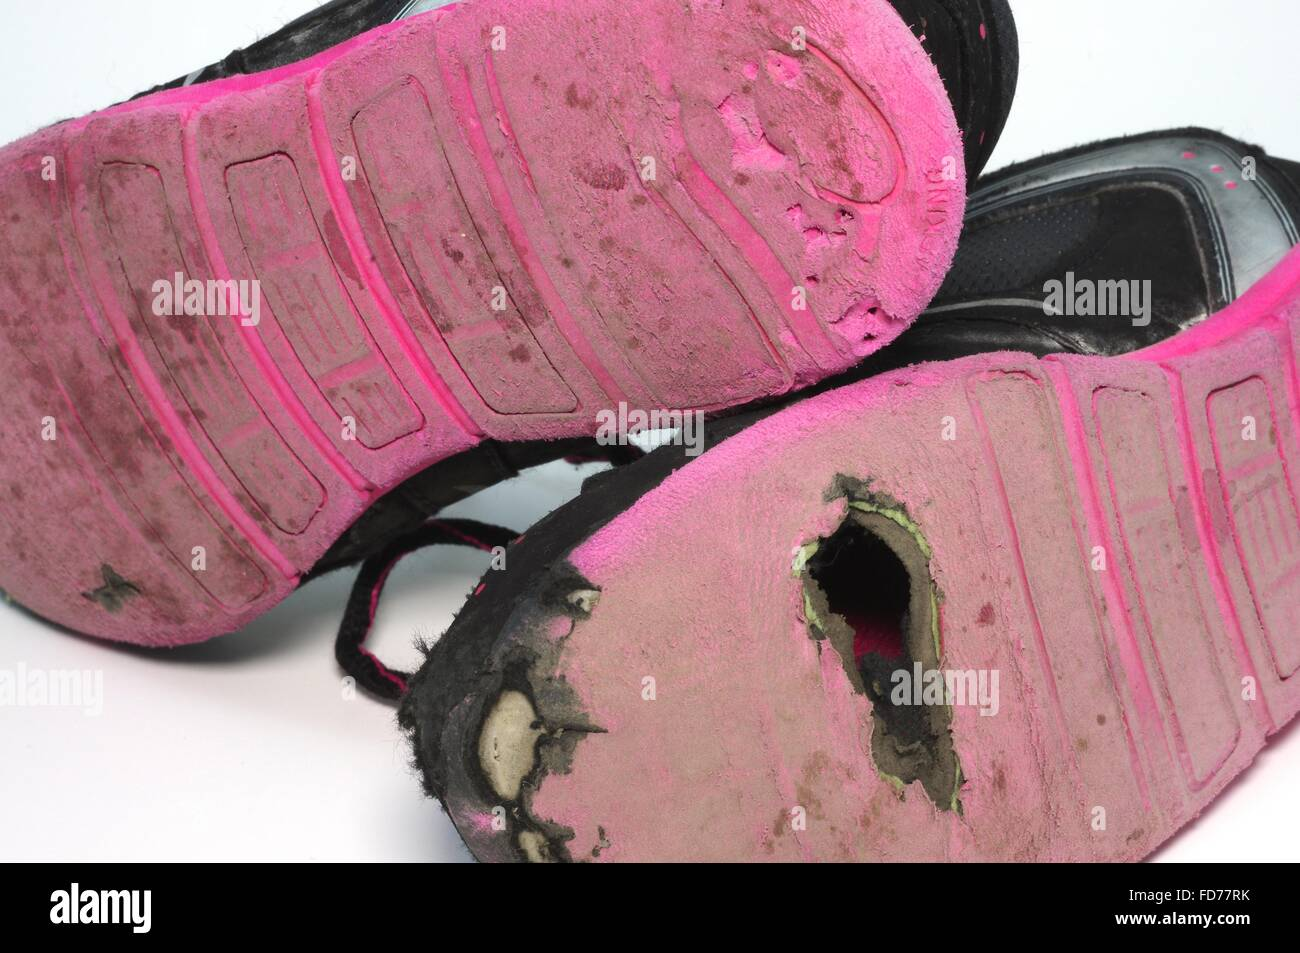 Worn out kids shoes. - Stock Image